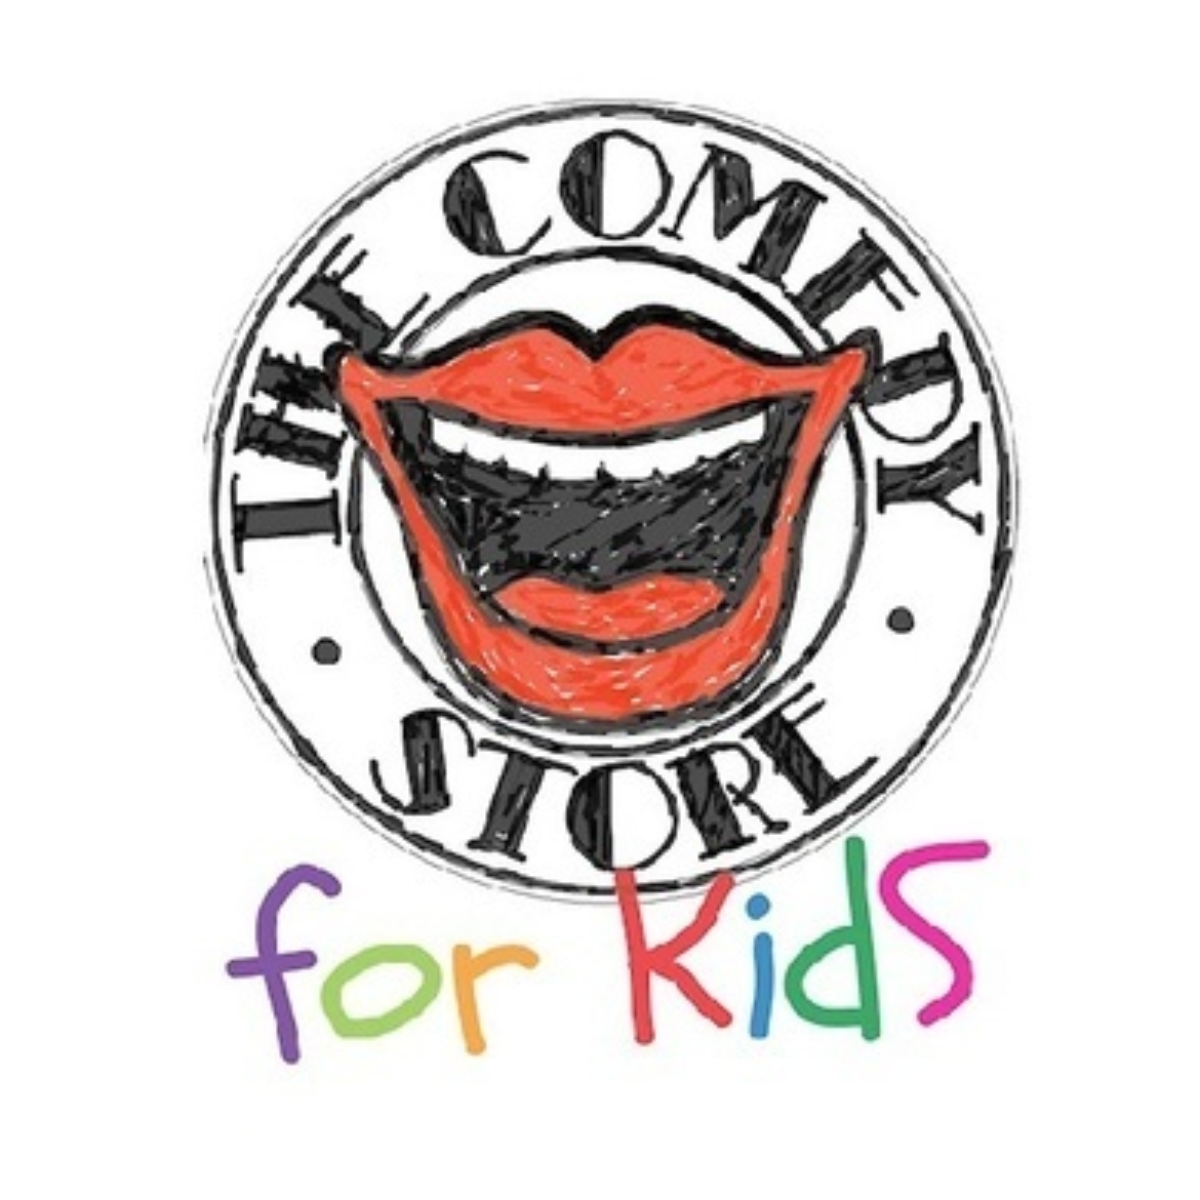 Comedy Store For Kids Images